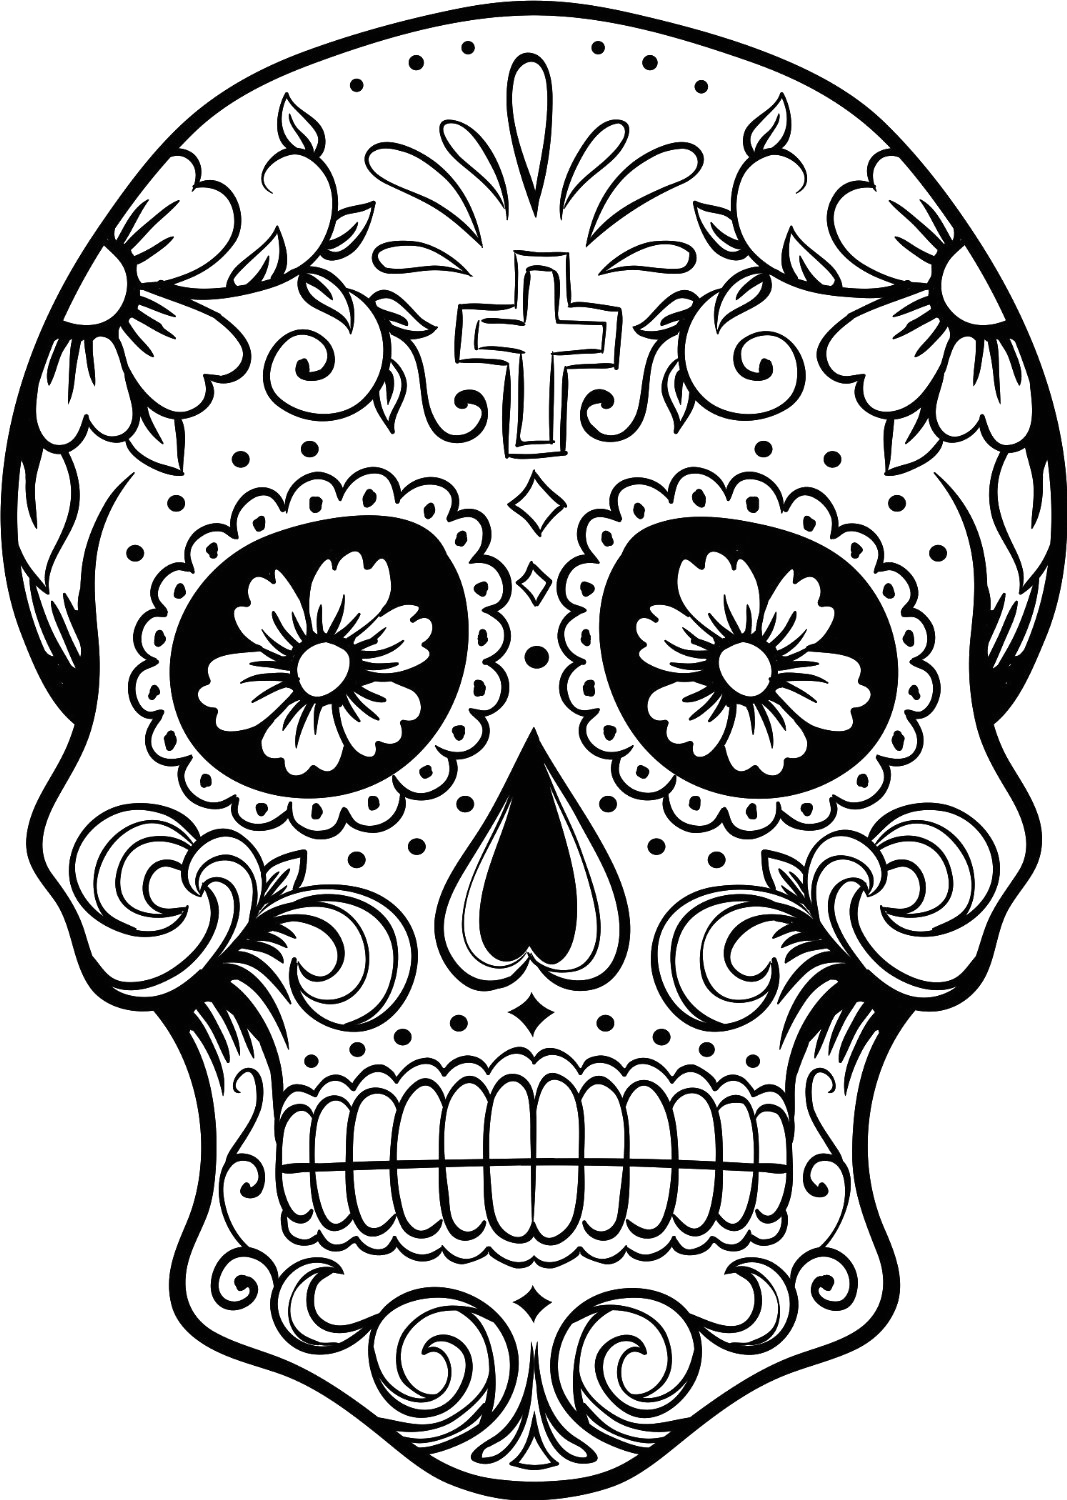 Coloring Pages Of Day Of the Dead Skulls Free Printable Day Of the Dead Coloring Pages Best